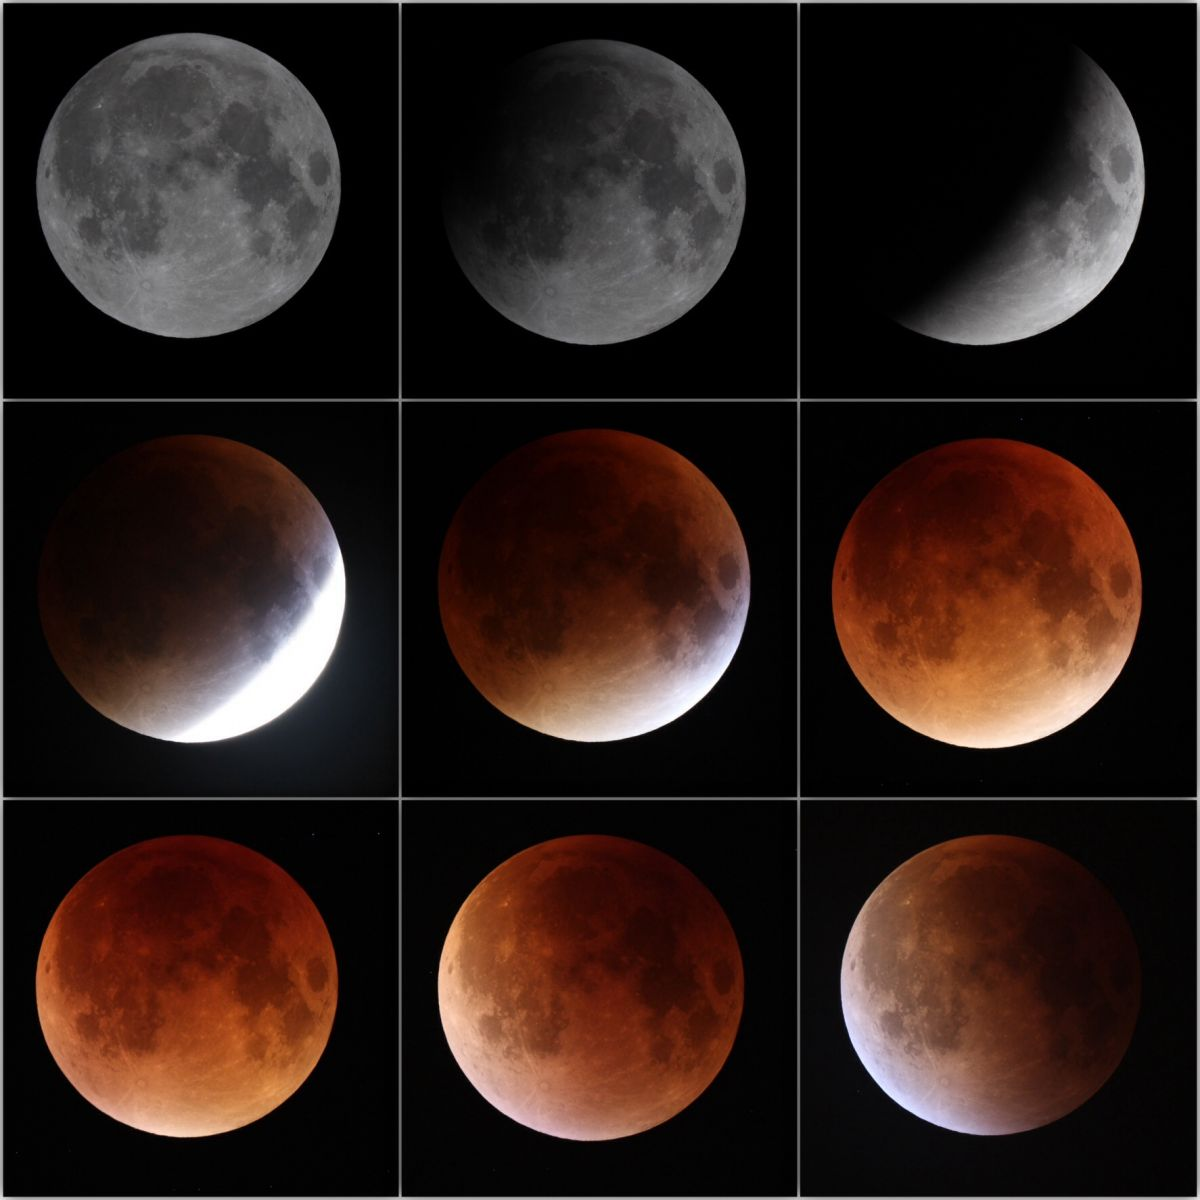 Montage of the lunar eclipse 28.09.2015